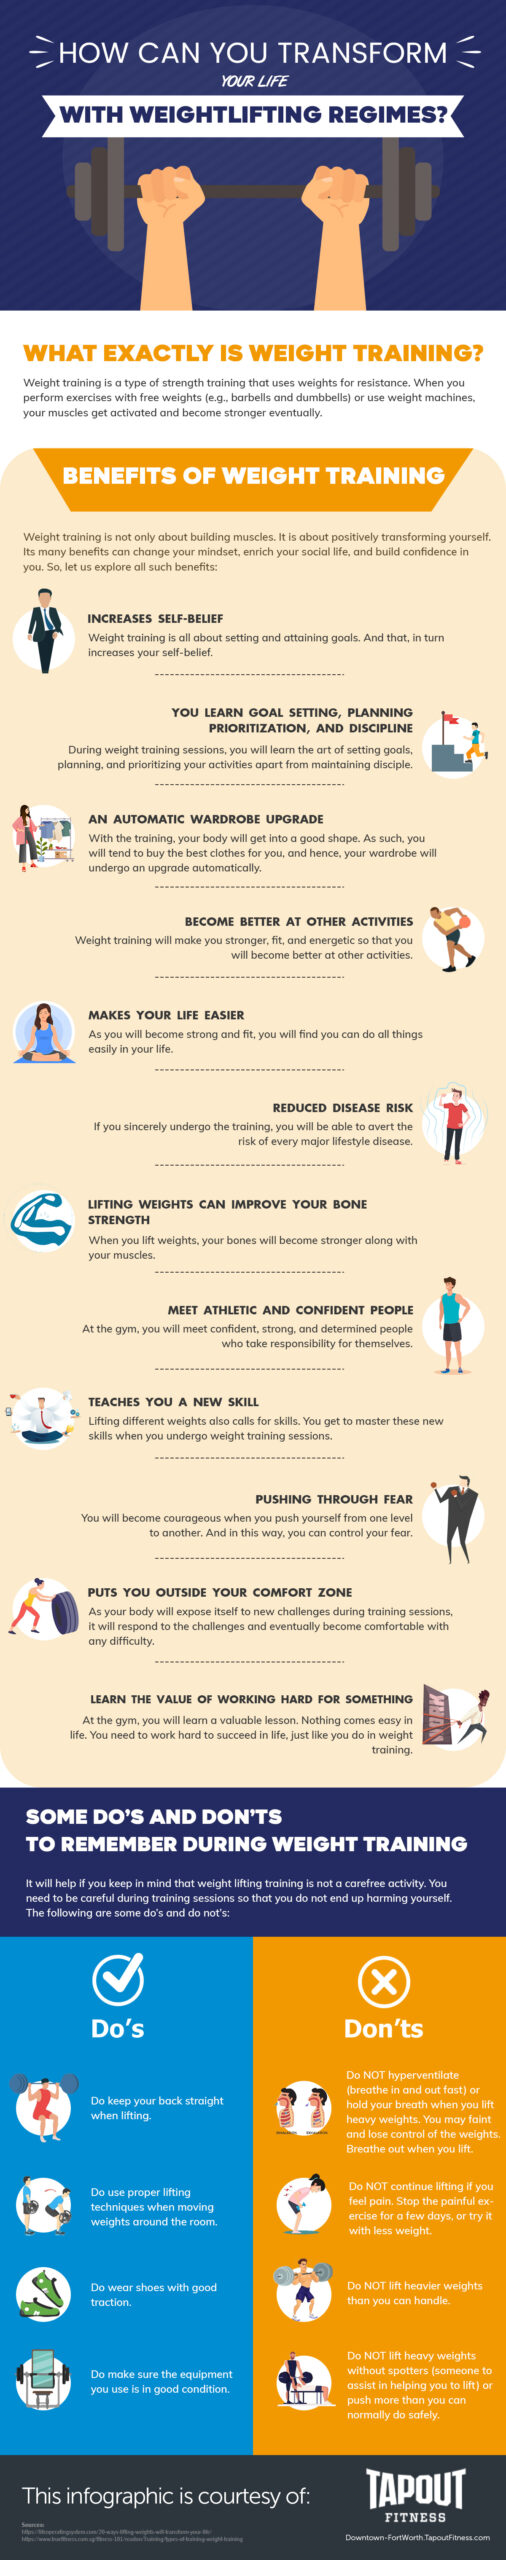 Transform-Life-with-Weightlifting-Infographic